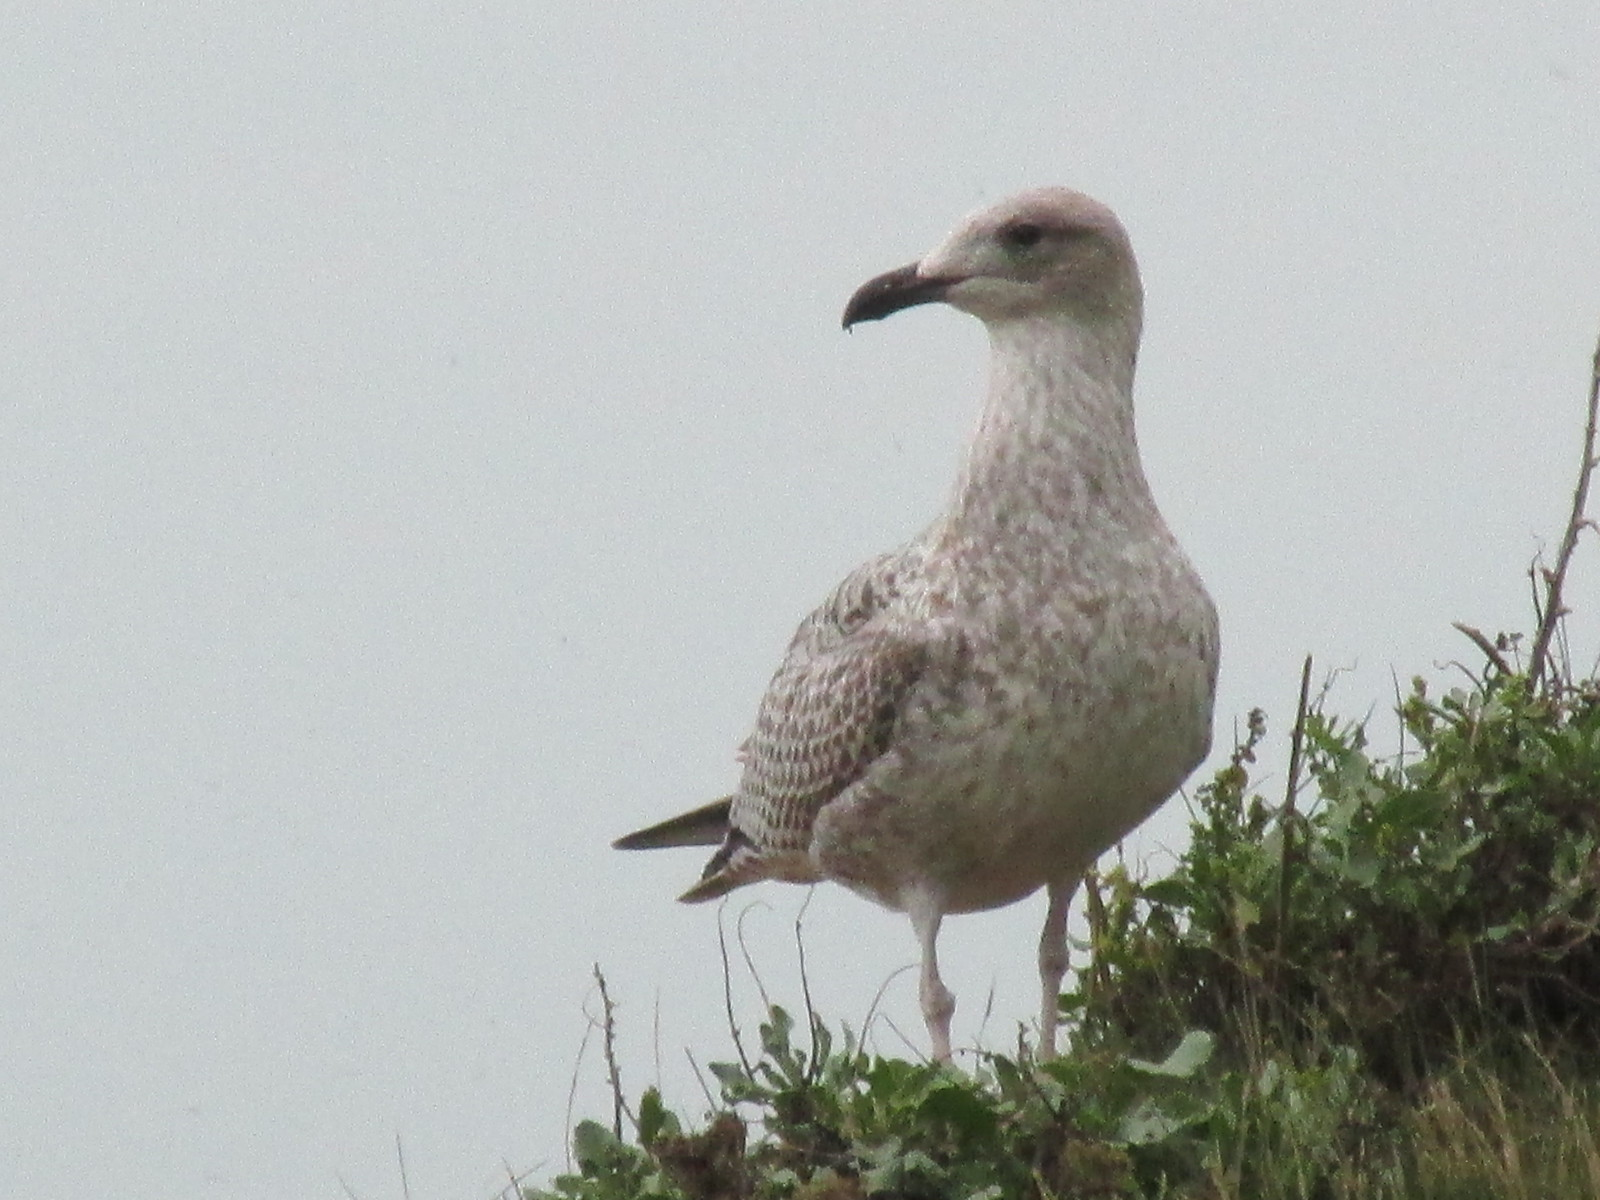 August 29, 2015: Lewes to Seaford Gull on cliff's edge